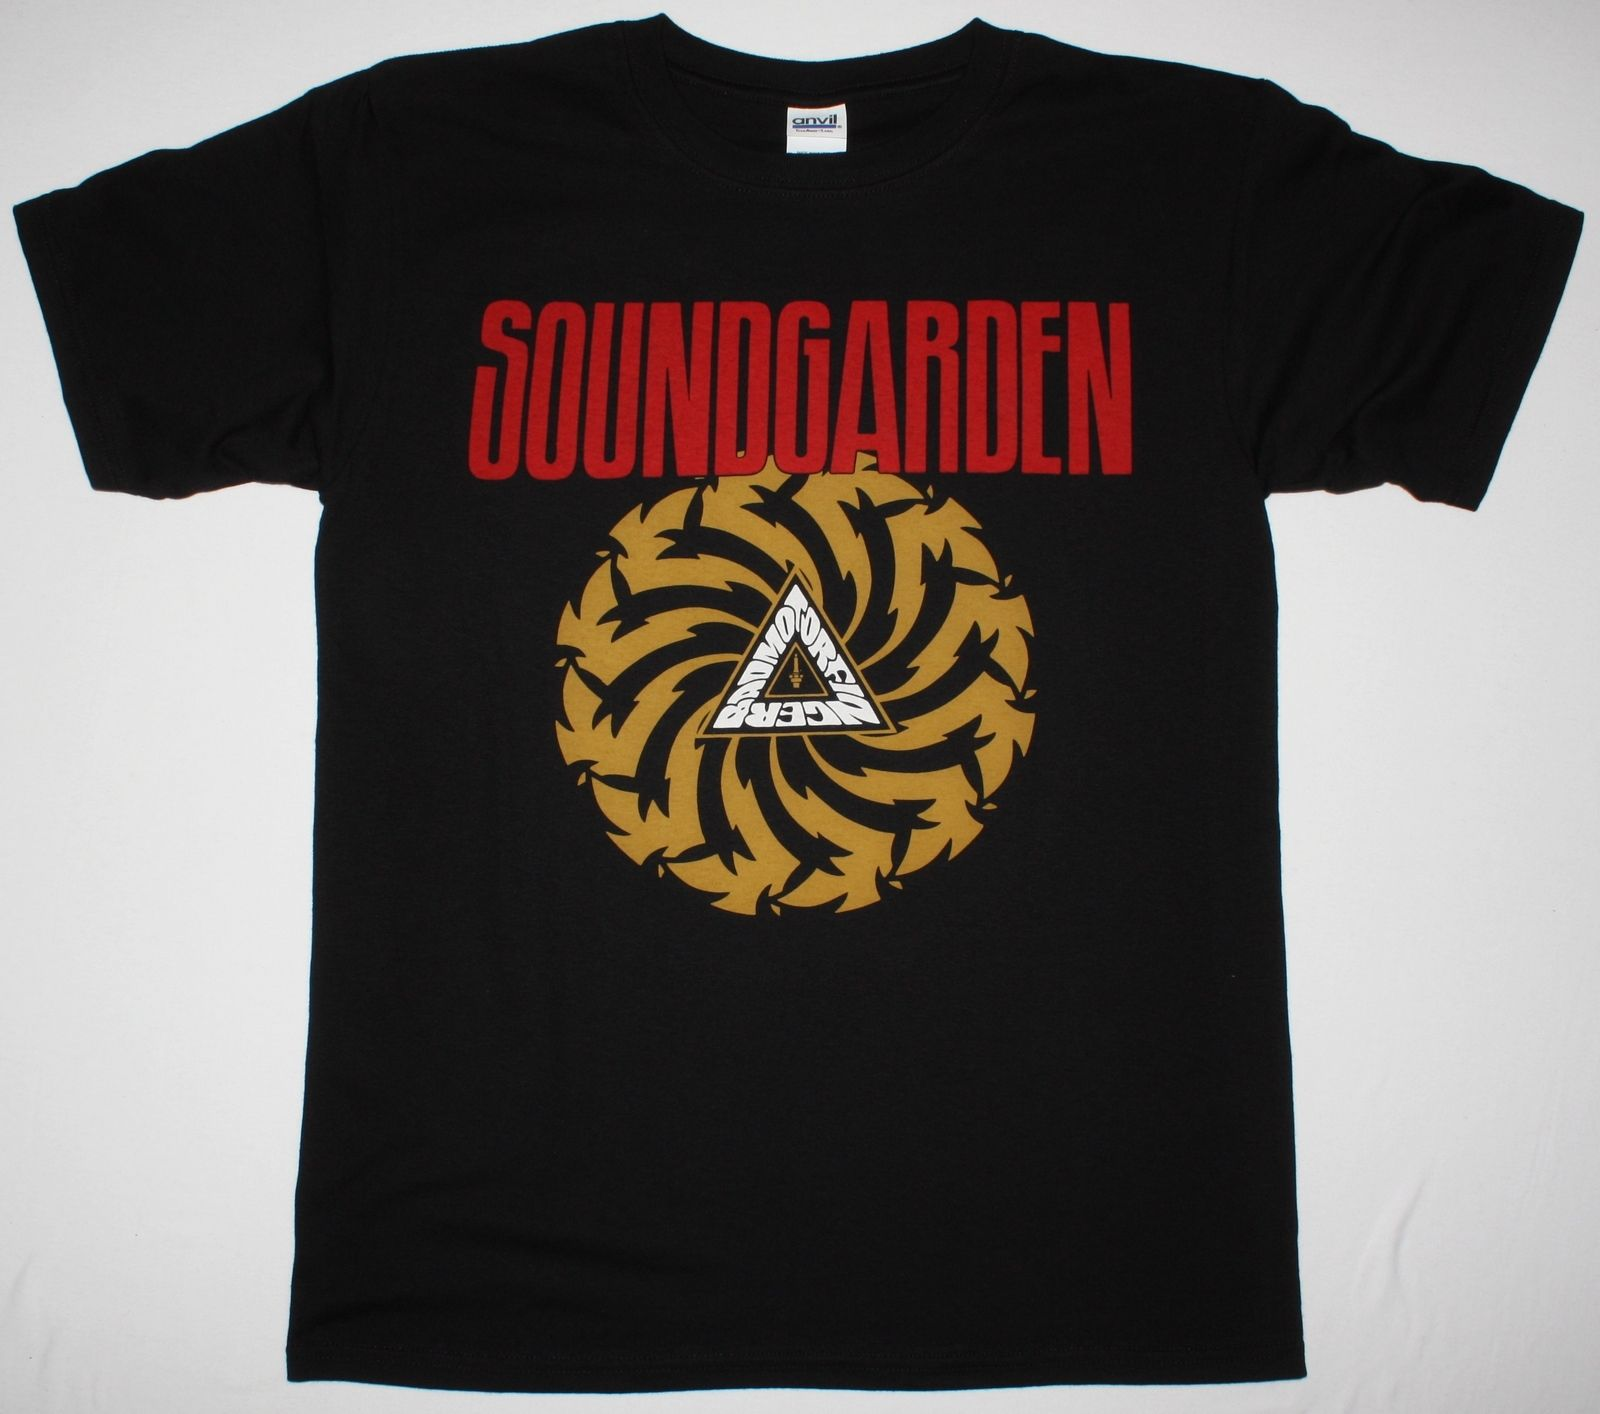 Soundgarden badmotorfinger 39 92 audioslave grunerge seattle band new black t shirt cheap crew neck for The garden band merch